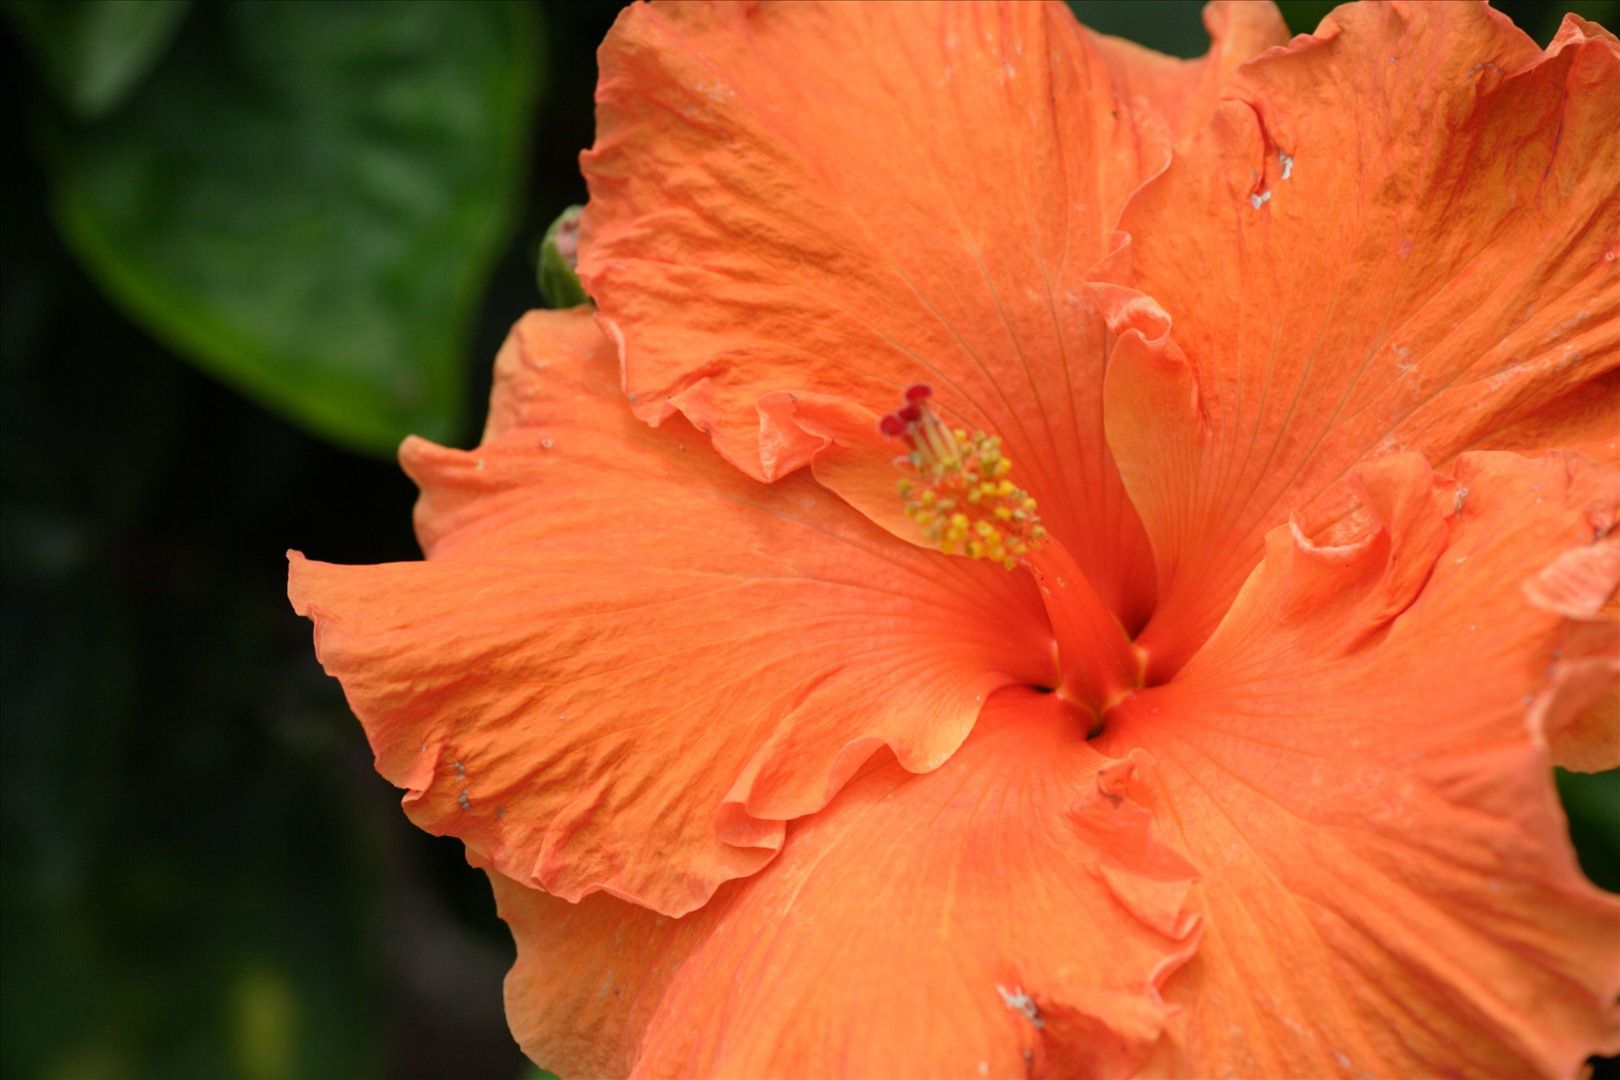 The Chinese hibiscus, a shrub in the Malvaceae family. © van swearingen, Flickr CC by nc-sa 2.0